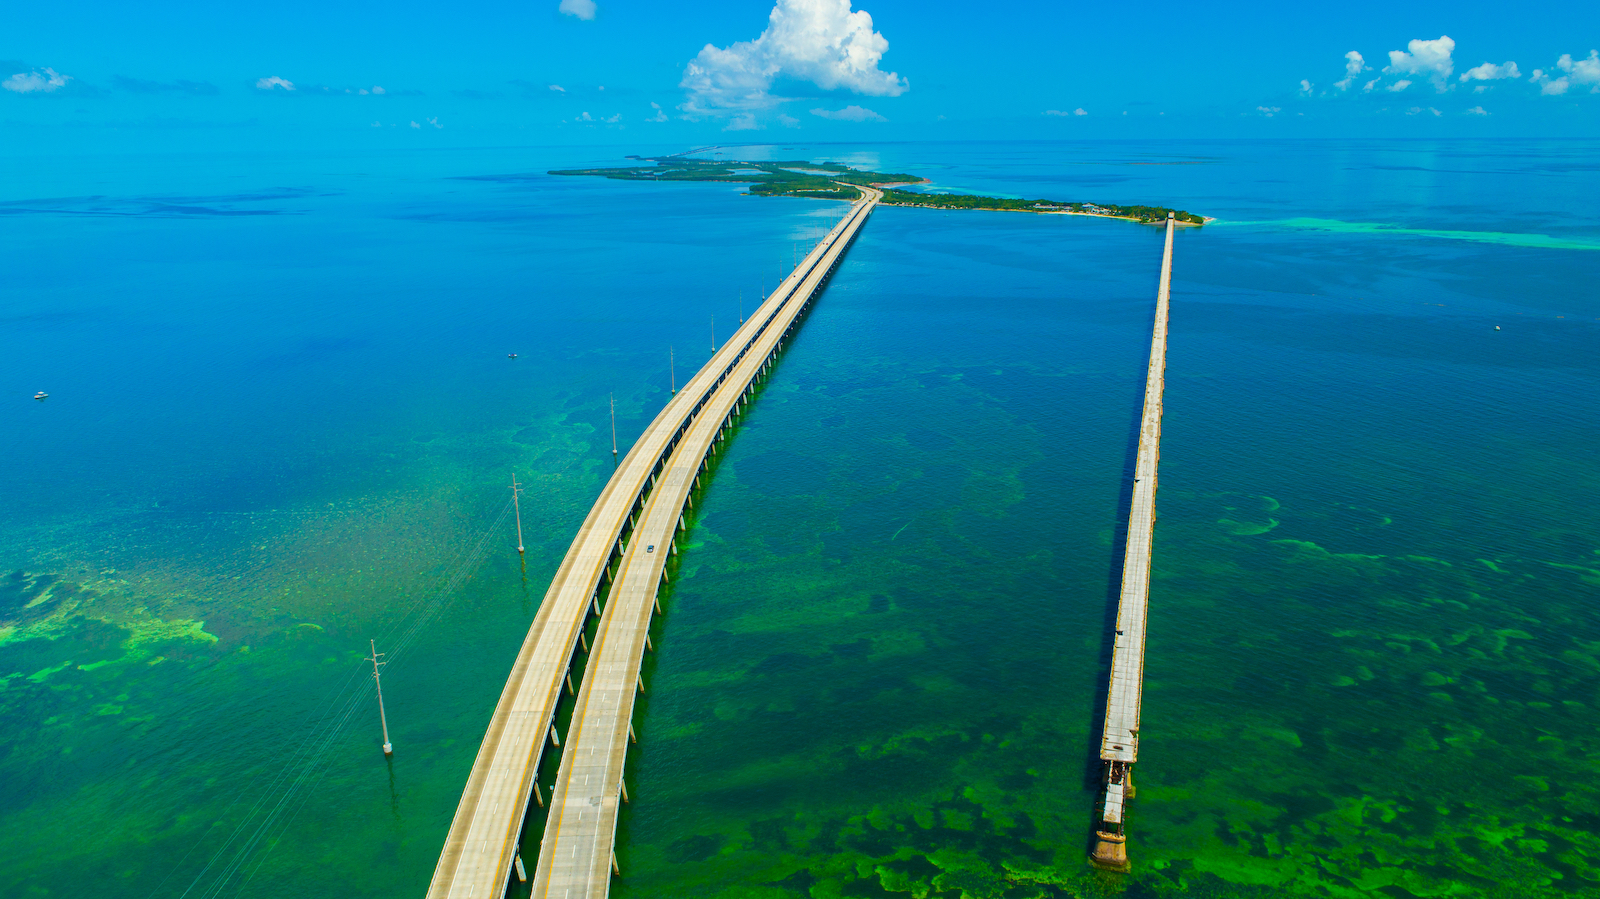 GyPSy Guide Narrated Driving Tour App for Miami Key West